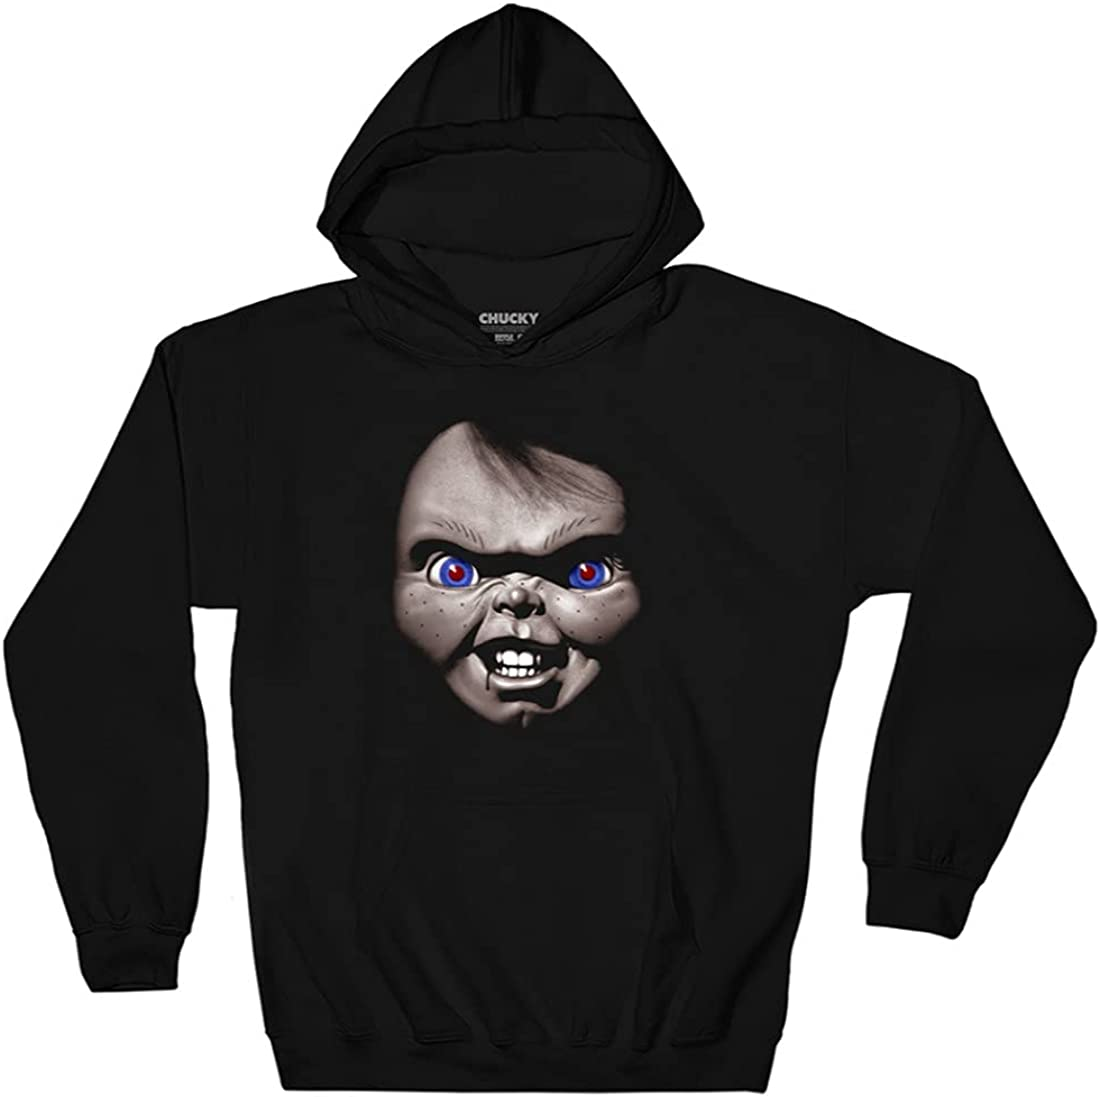 Purchase Ripple Junction Chucky Adult Unisex Face Over Fleece Hoodie Pull San Jose Mall